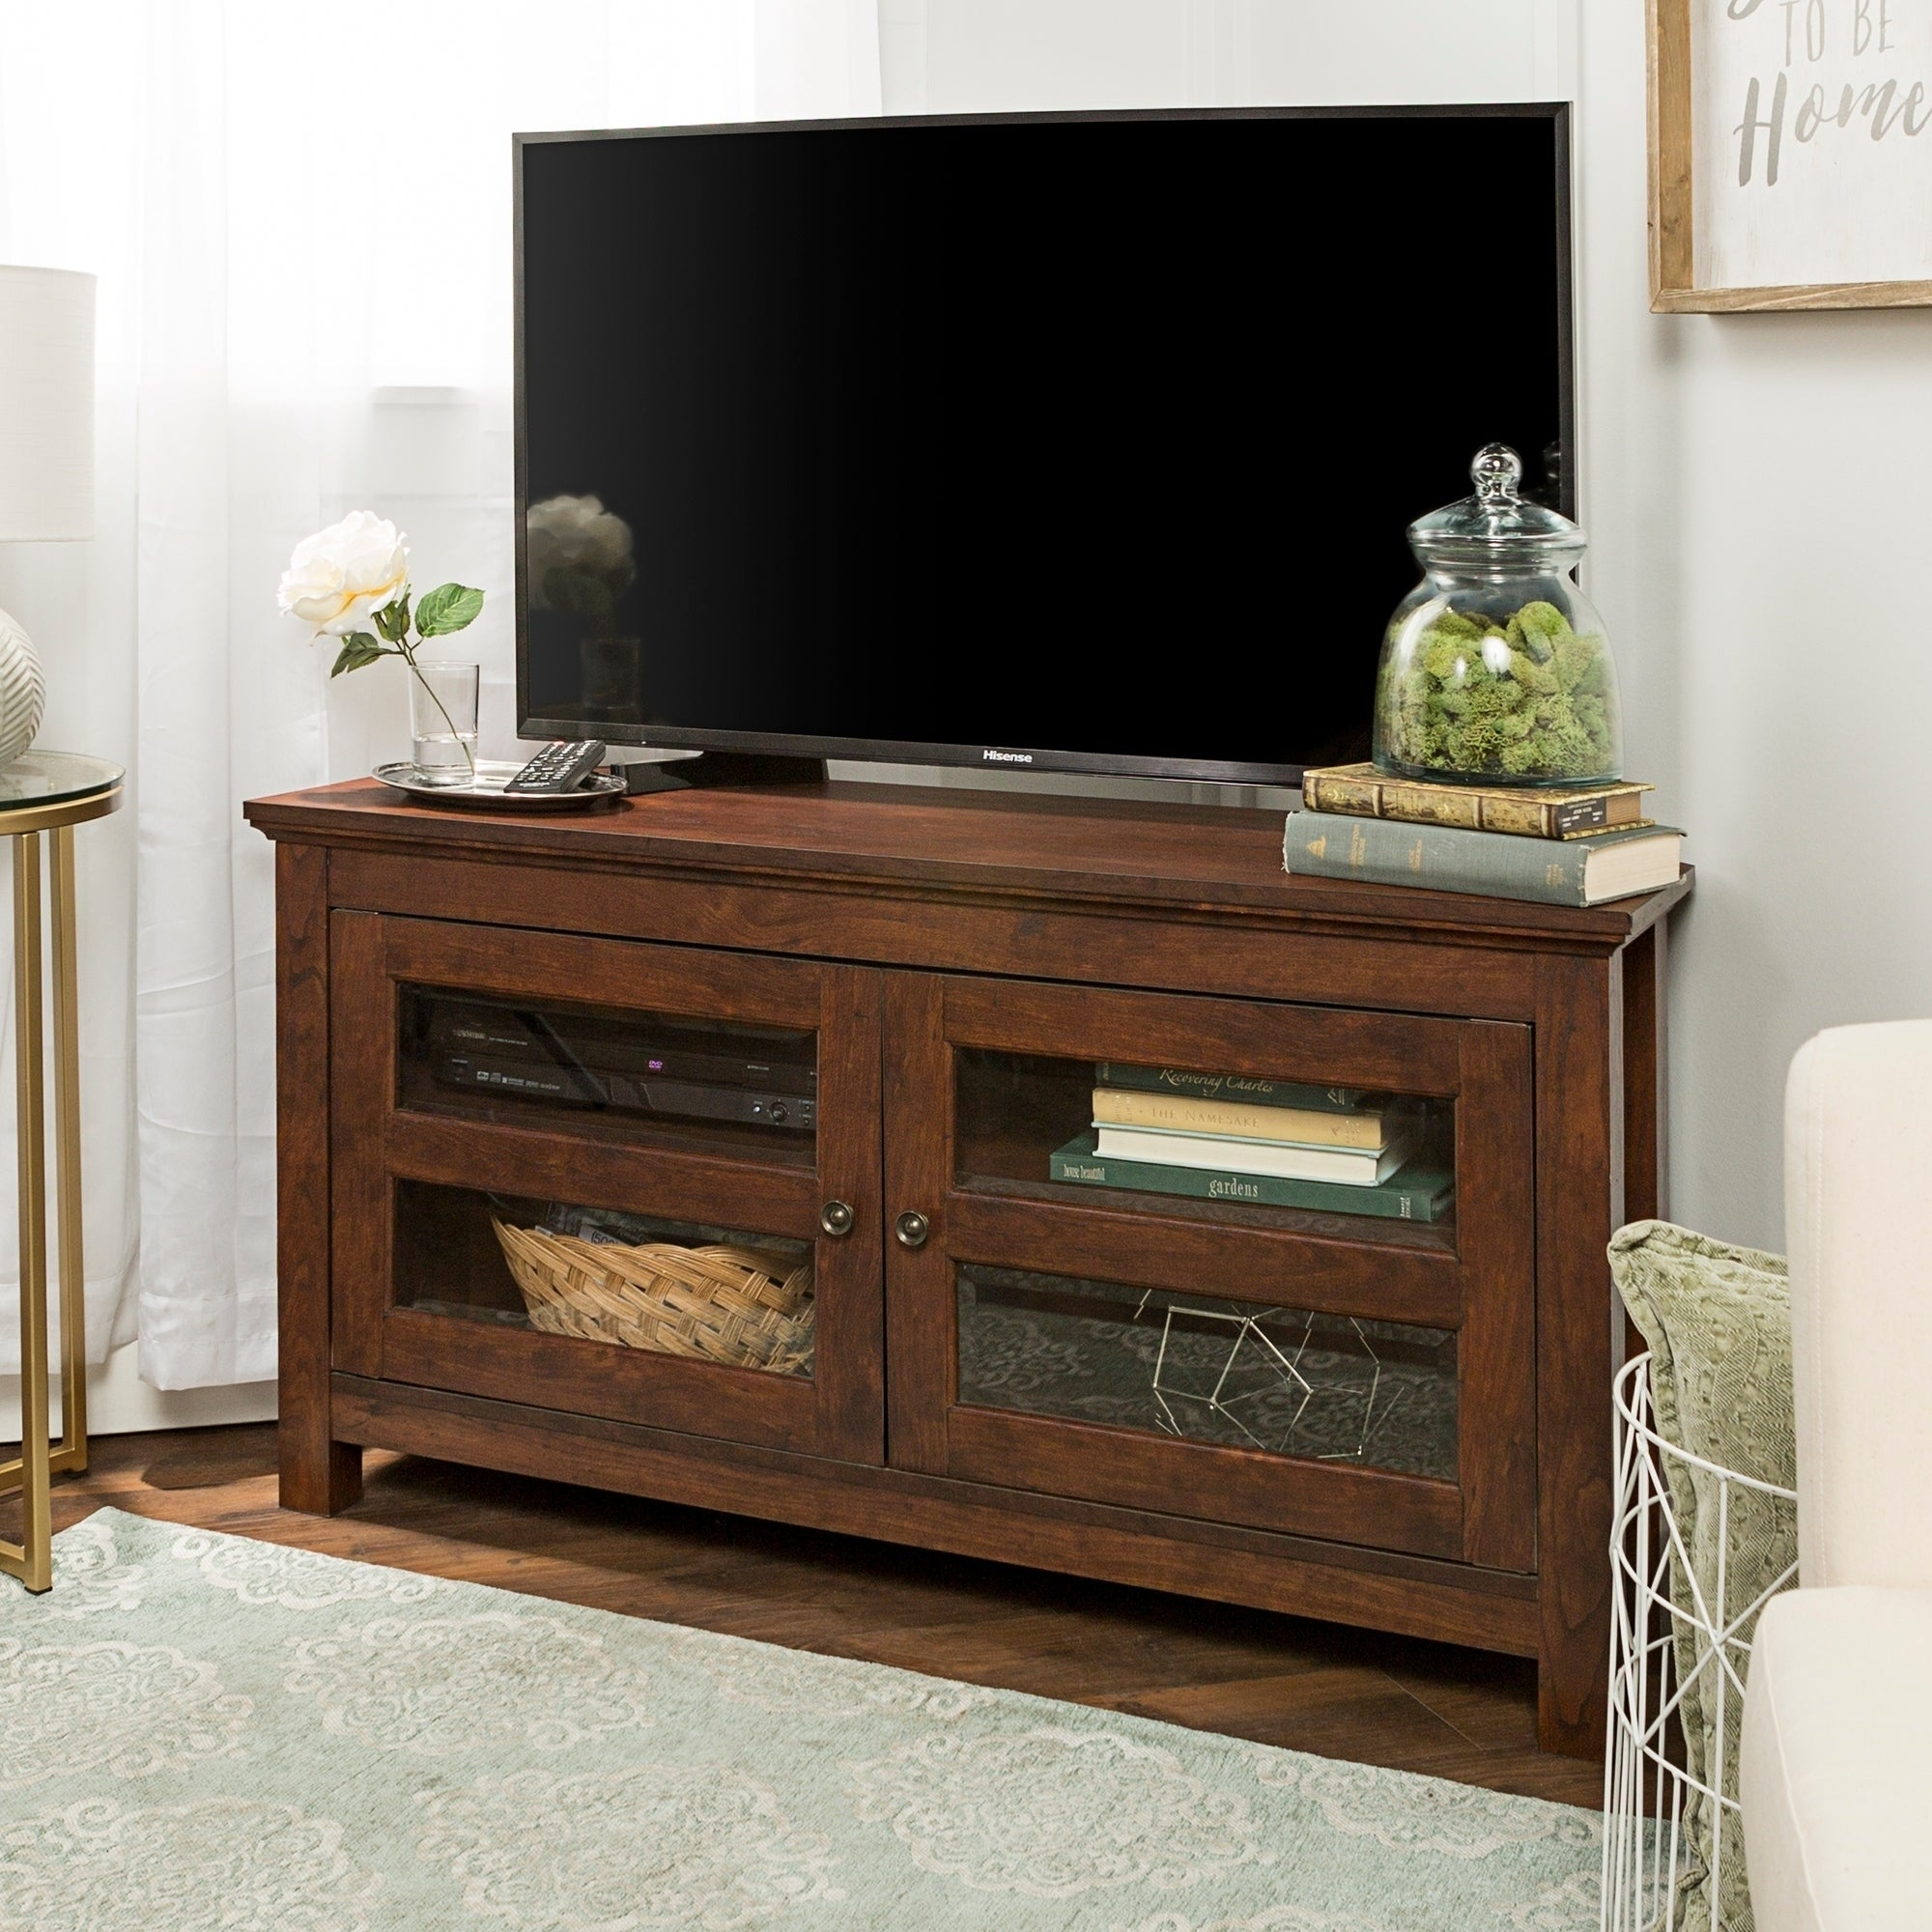 Copper Grove Bow Valley 44 Inch Brown Wood Corner Tv Stand